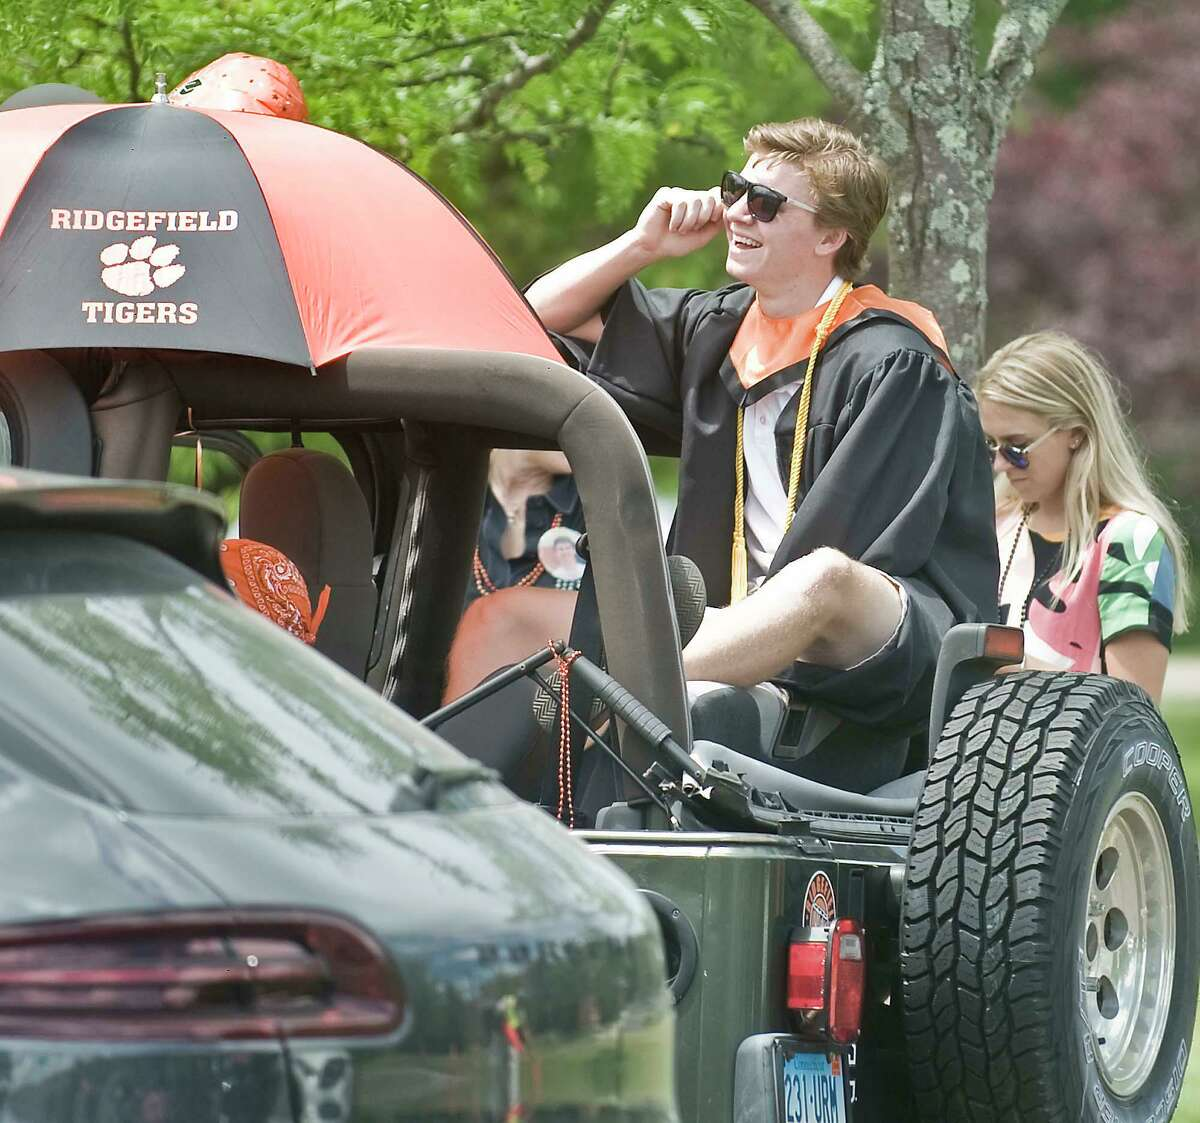 2020 Ridgefield High School graduate John Briody watches the ceremony on the big screen from his Jeep. Thursday, June 18, 2020.